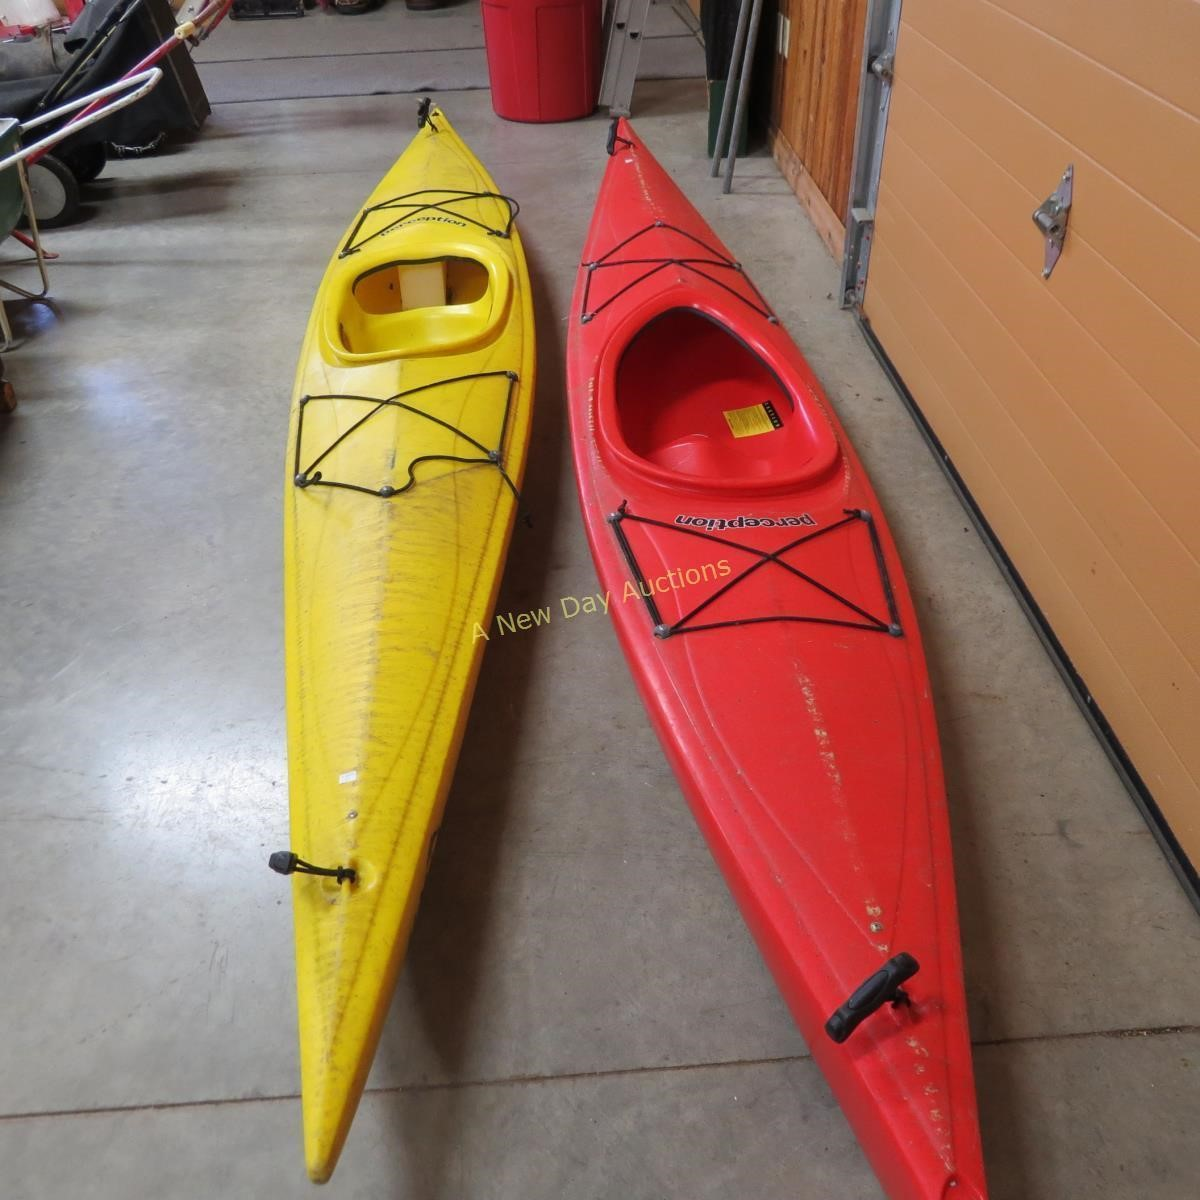 2 Perception Umiak Junior Touring Kayaks | A New Day Auctions